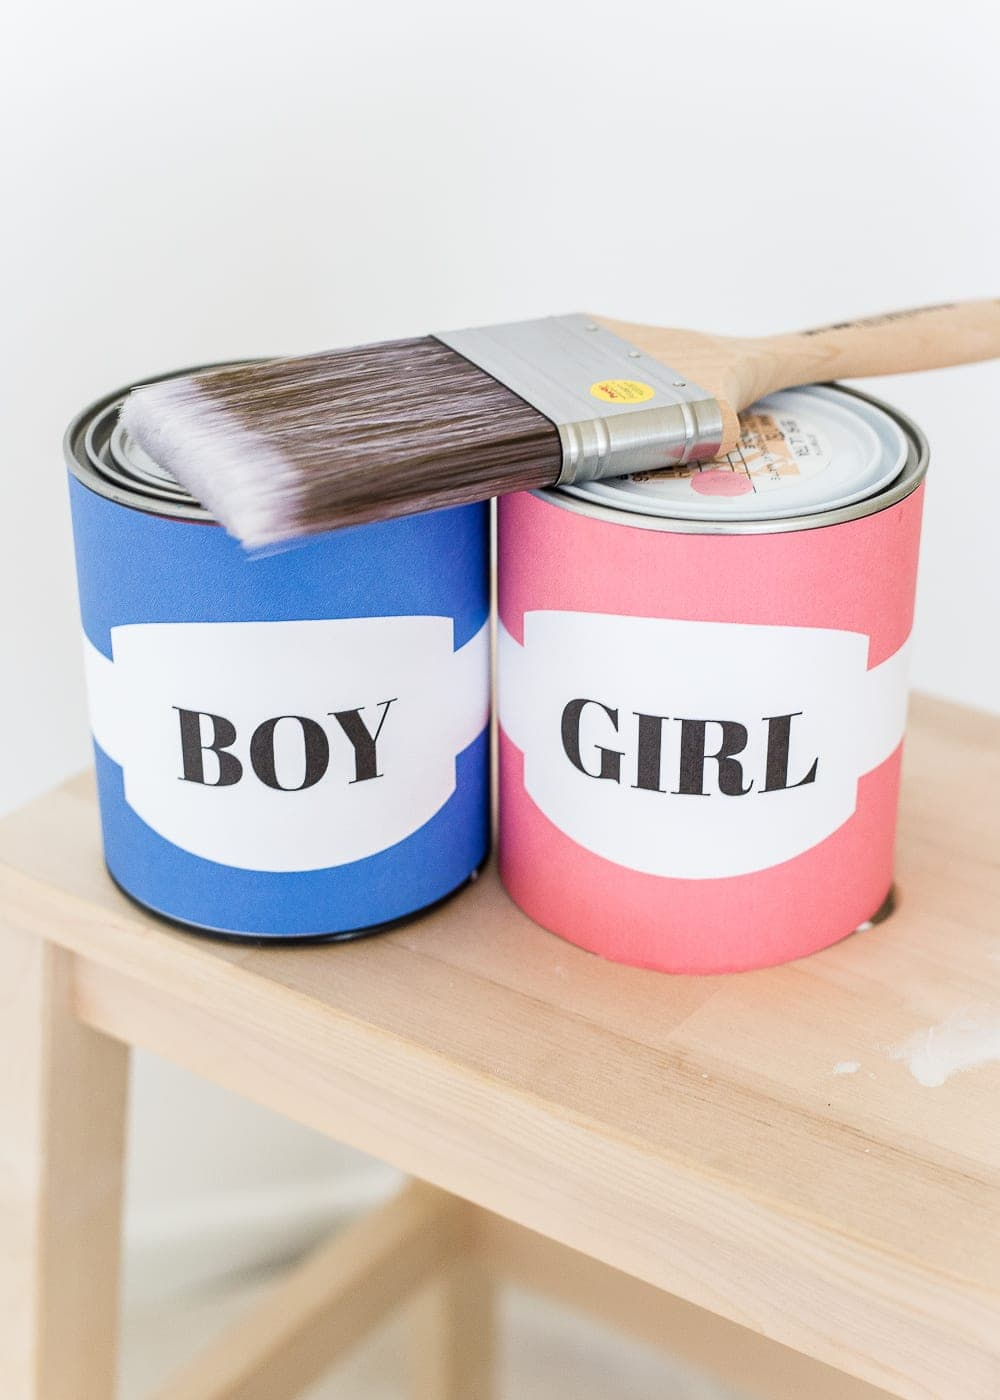 A gender reveal photo shoot using wall paint for the nursery. #genderreveal #heorshe #boyorgirl #nursery #genderphotoshoot #DIYgenderreveal